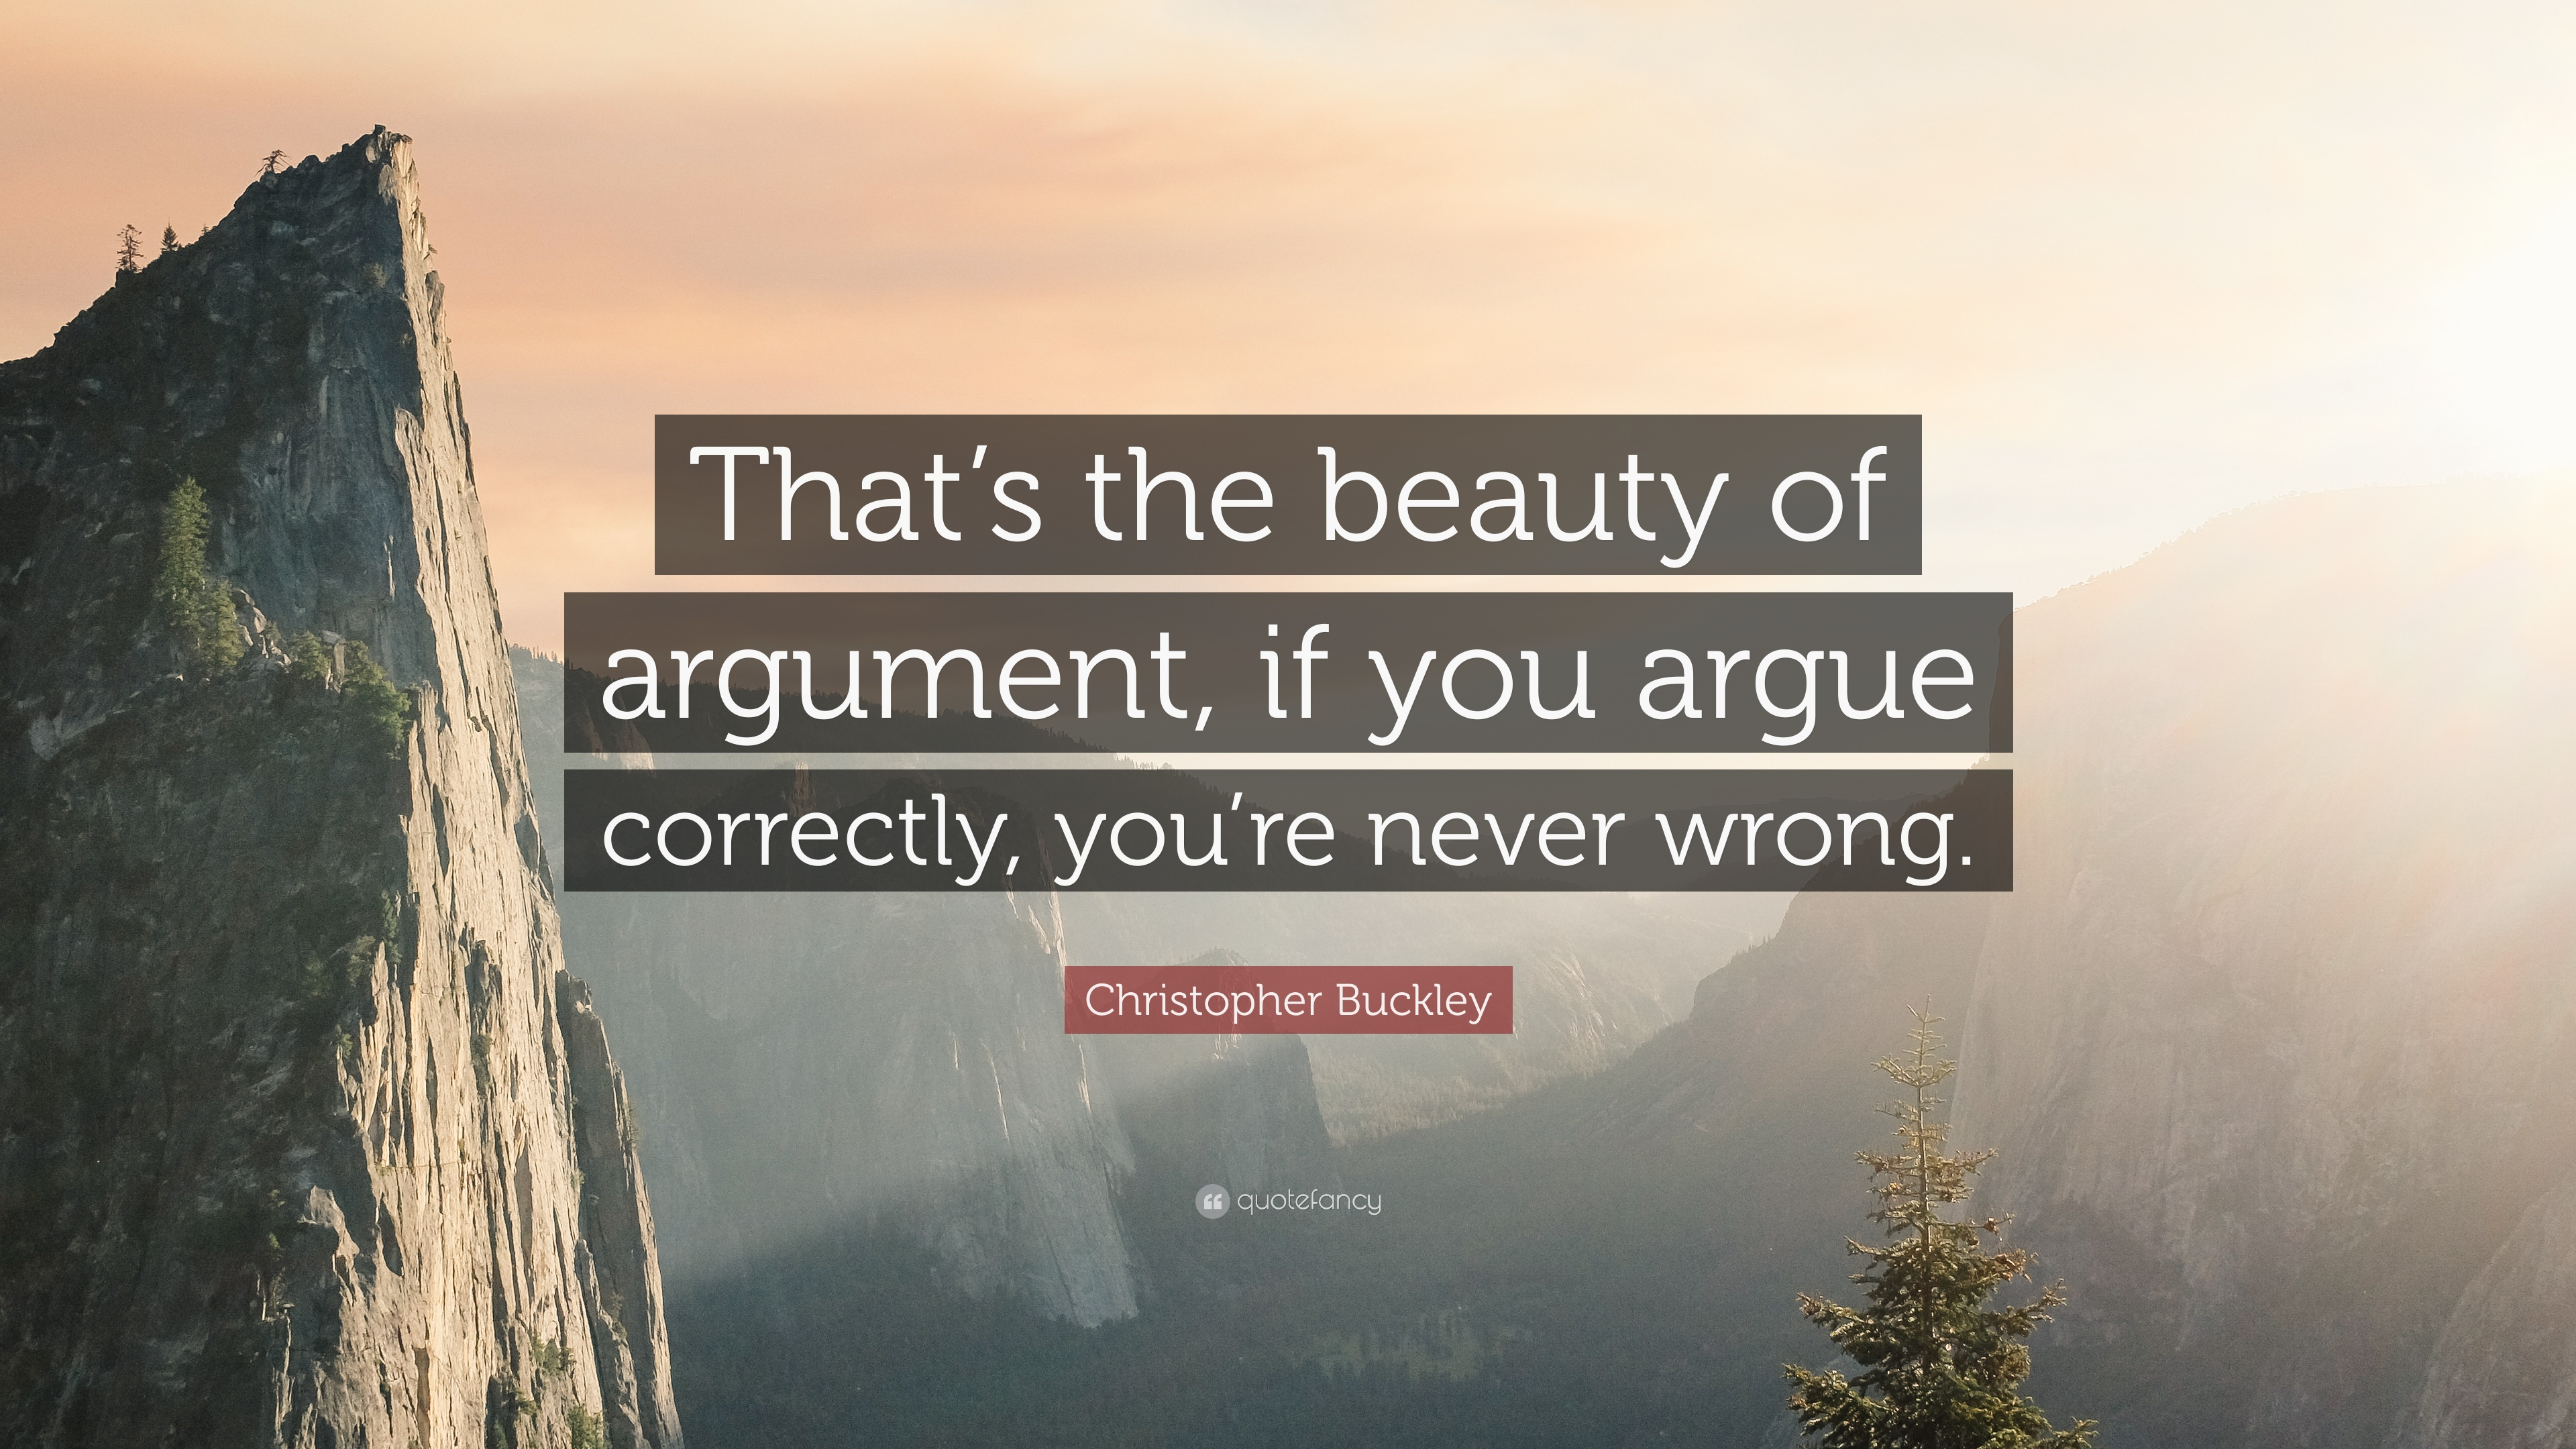 an analysis of nick naylors statement the beauty of argument is that if you argue correctly you are  You need to know what an argument is in order to construct a sound, valid argument or to evaluate another person's argument.